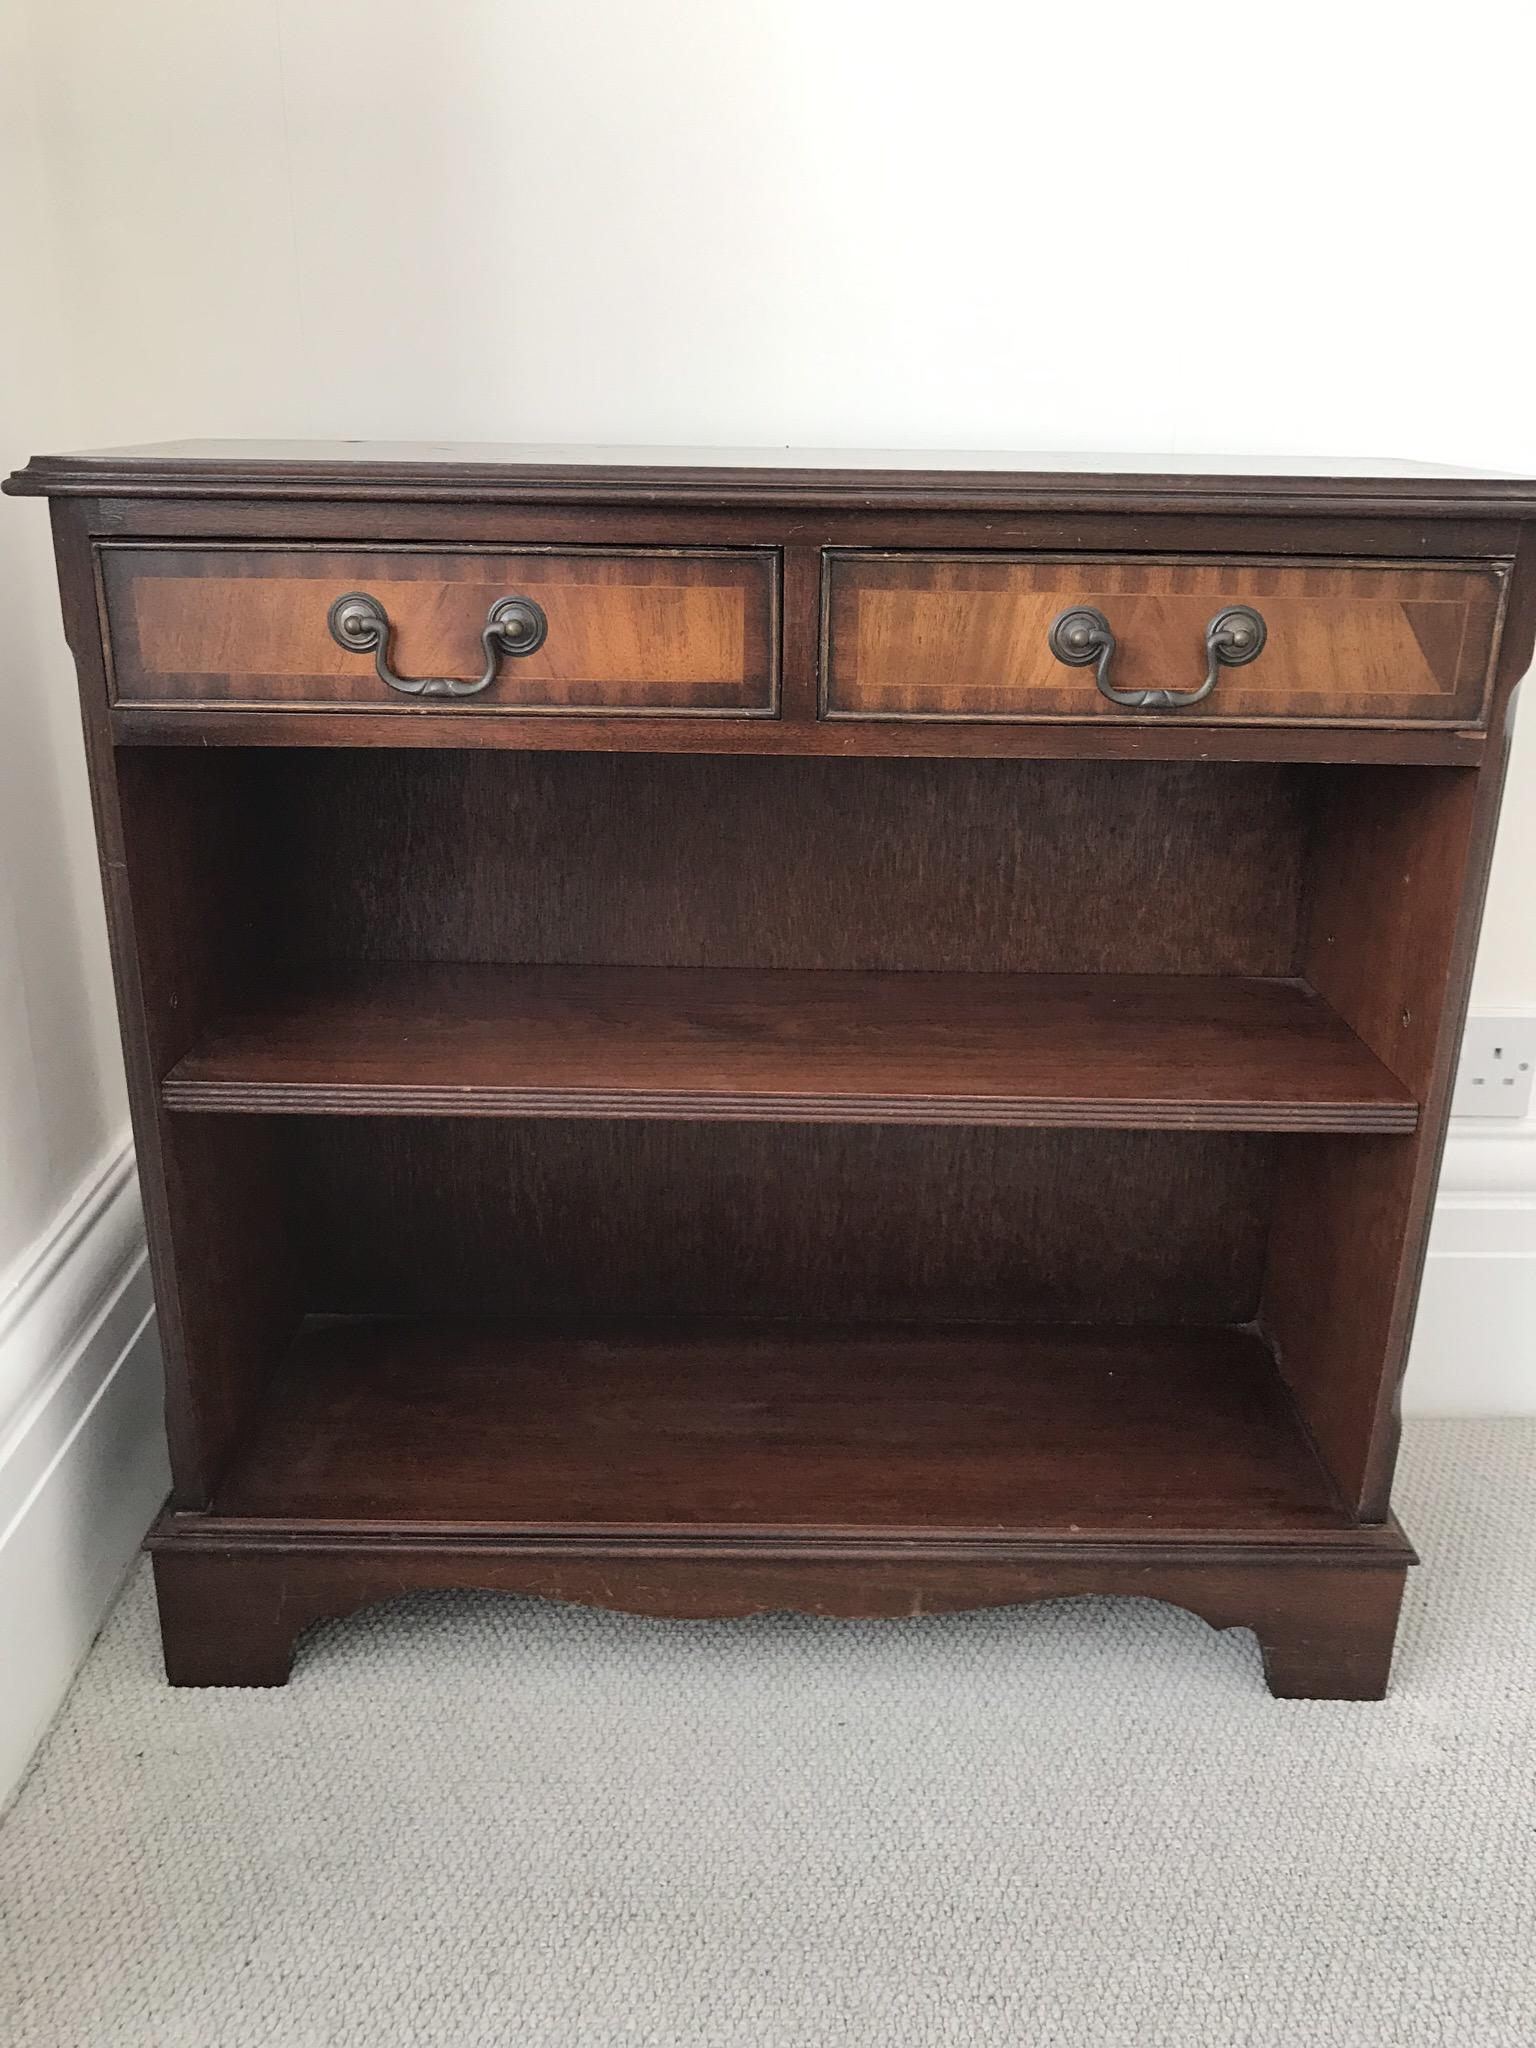 Mahogany bookcase with two drawers